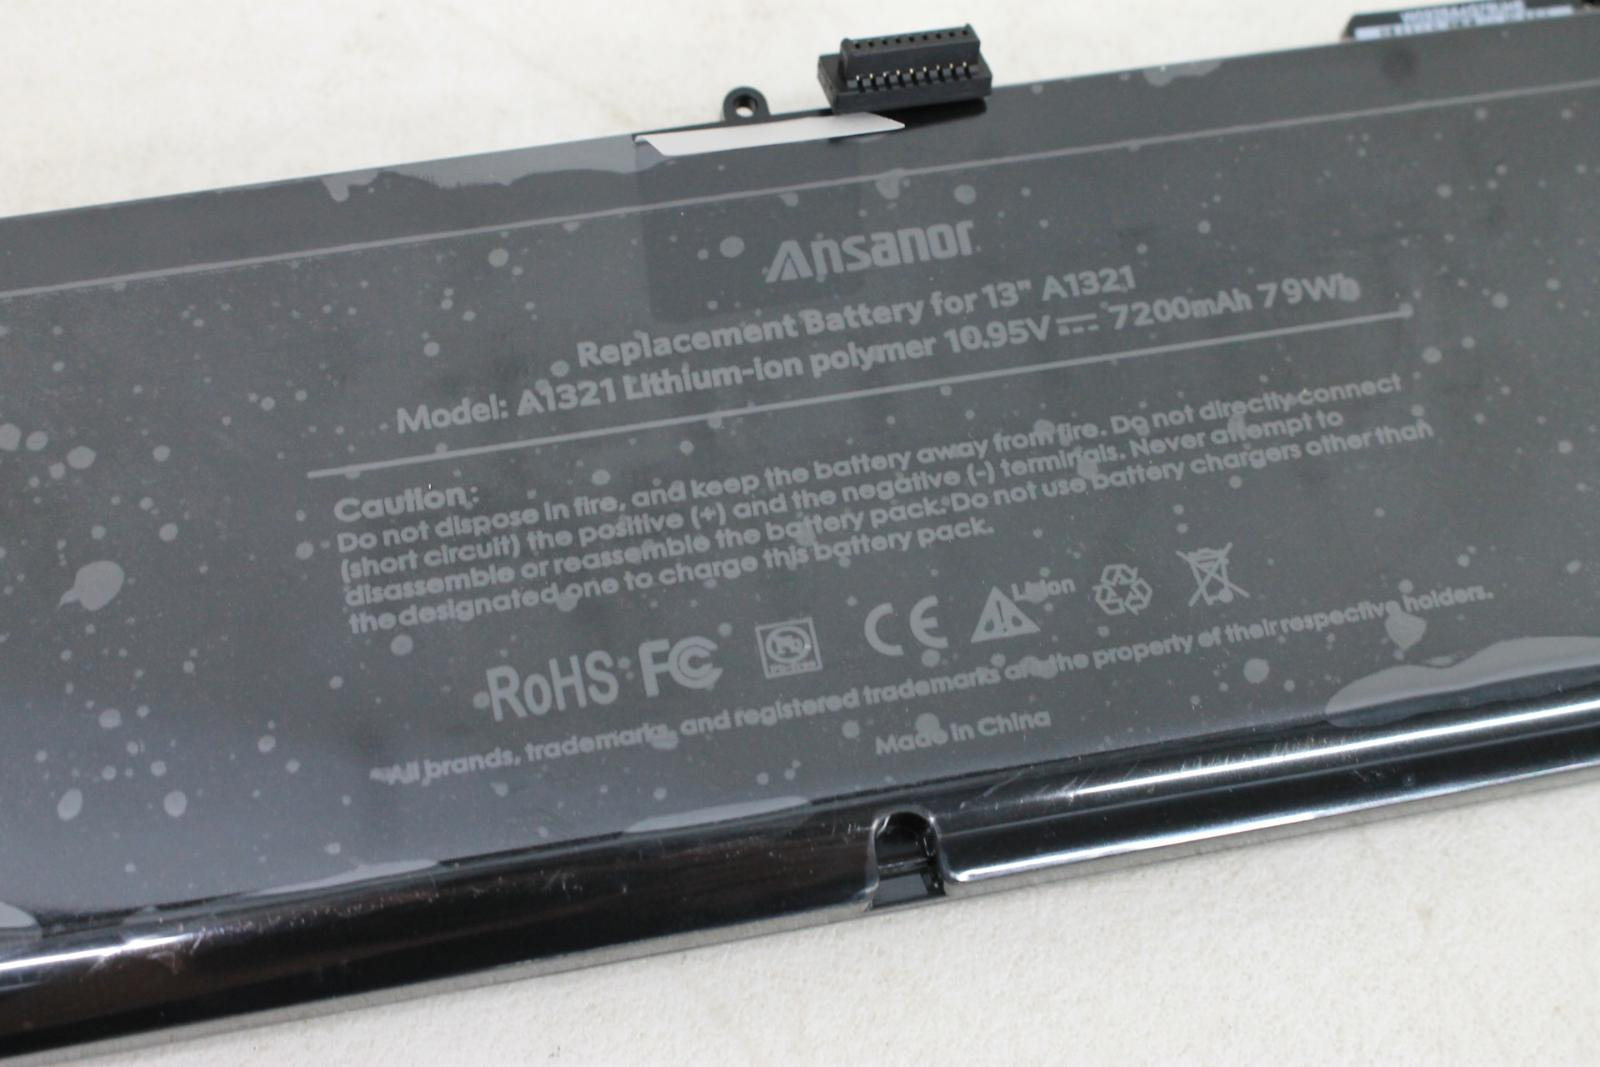 ANSANOR-10-95V-7200mAh-A1321-Type-Battery-For-Mid-2009-2010-MacBook-Pro-15-034-BNIB miniatuur 4